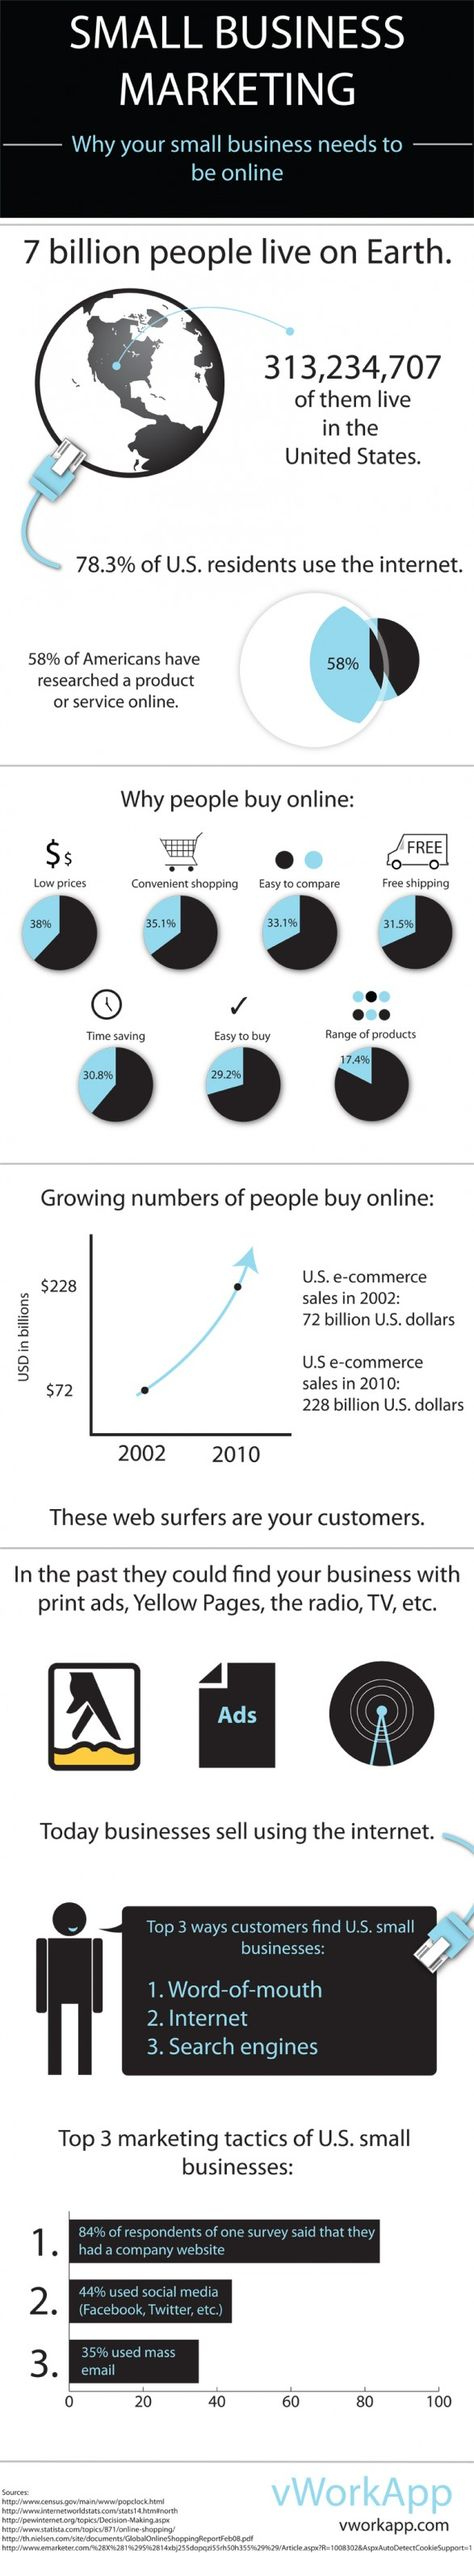 Why a small business needs to be online